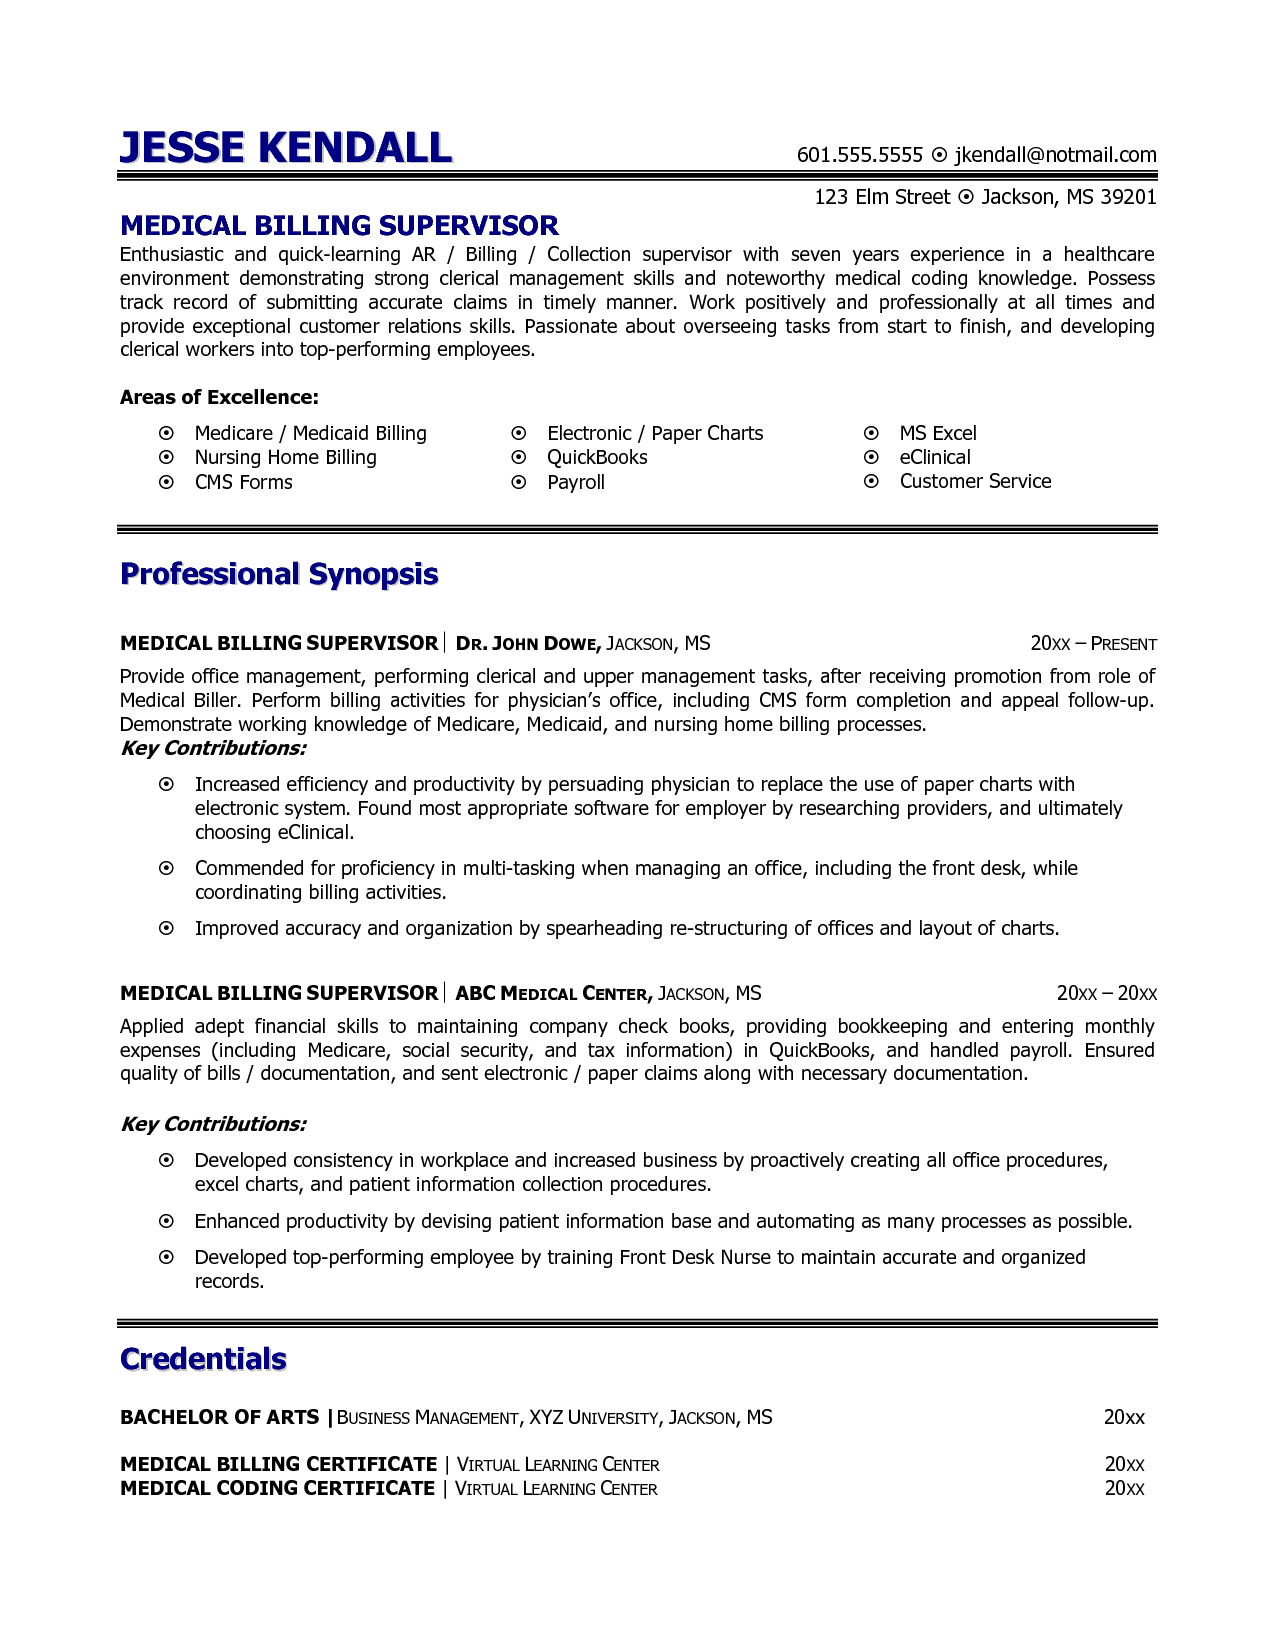 Resume Now Billing Top 8 Billing Coordinator Resume Samples Slideshare Medical Billing Supervisor Resume Example